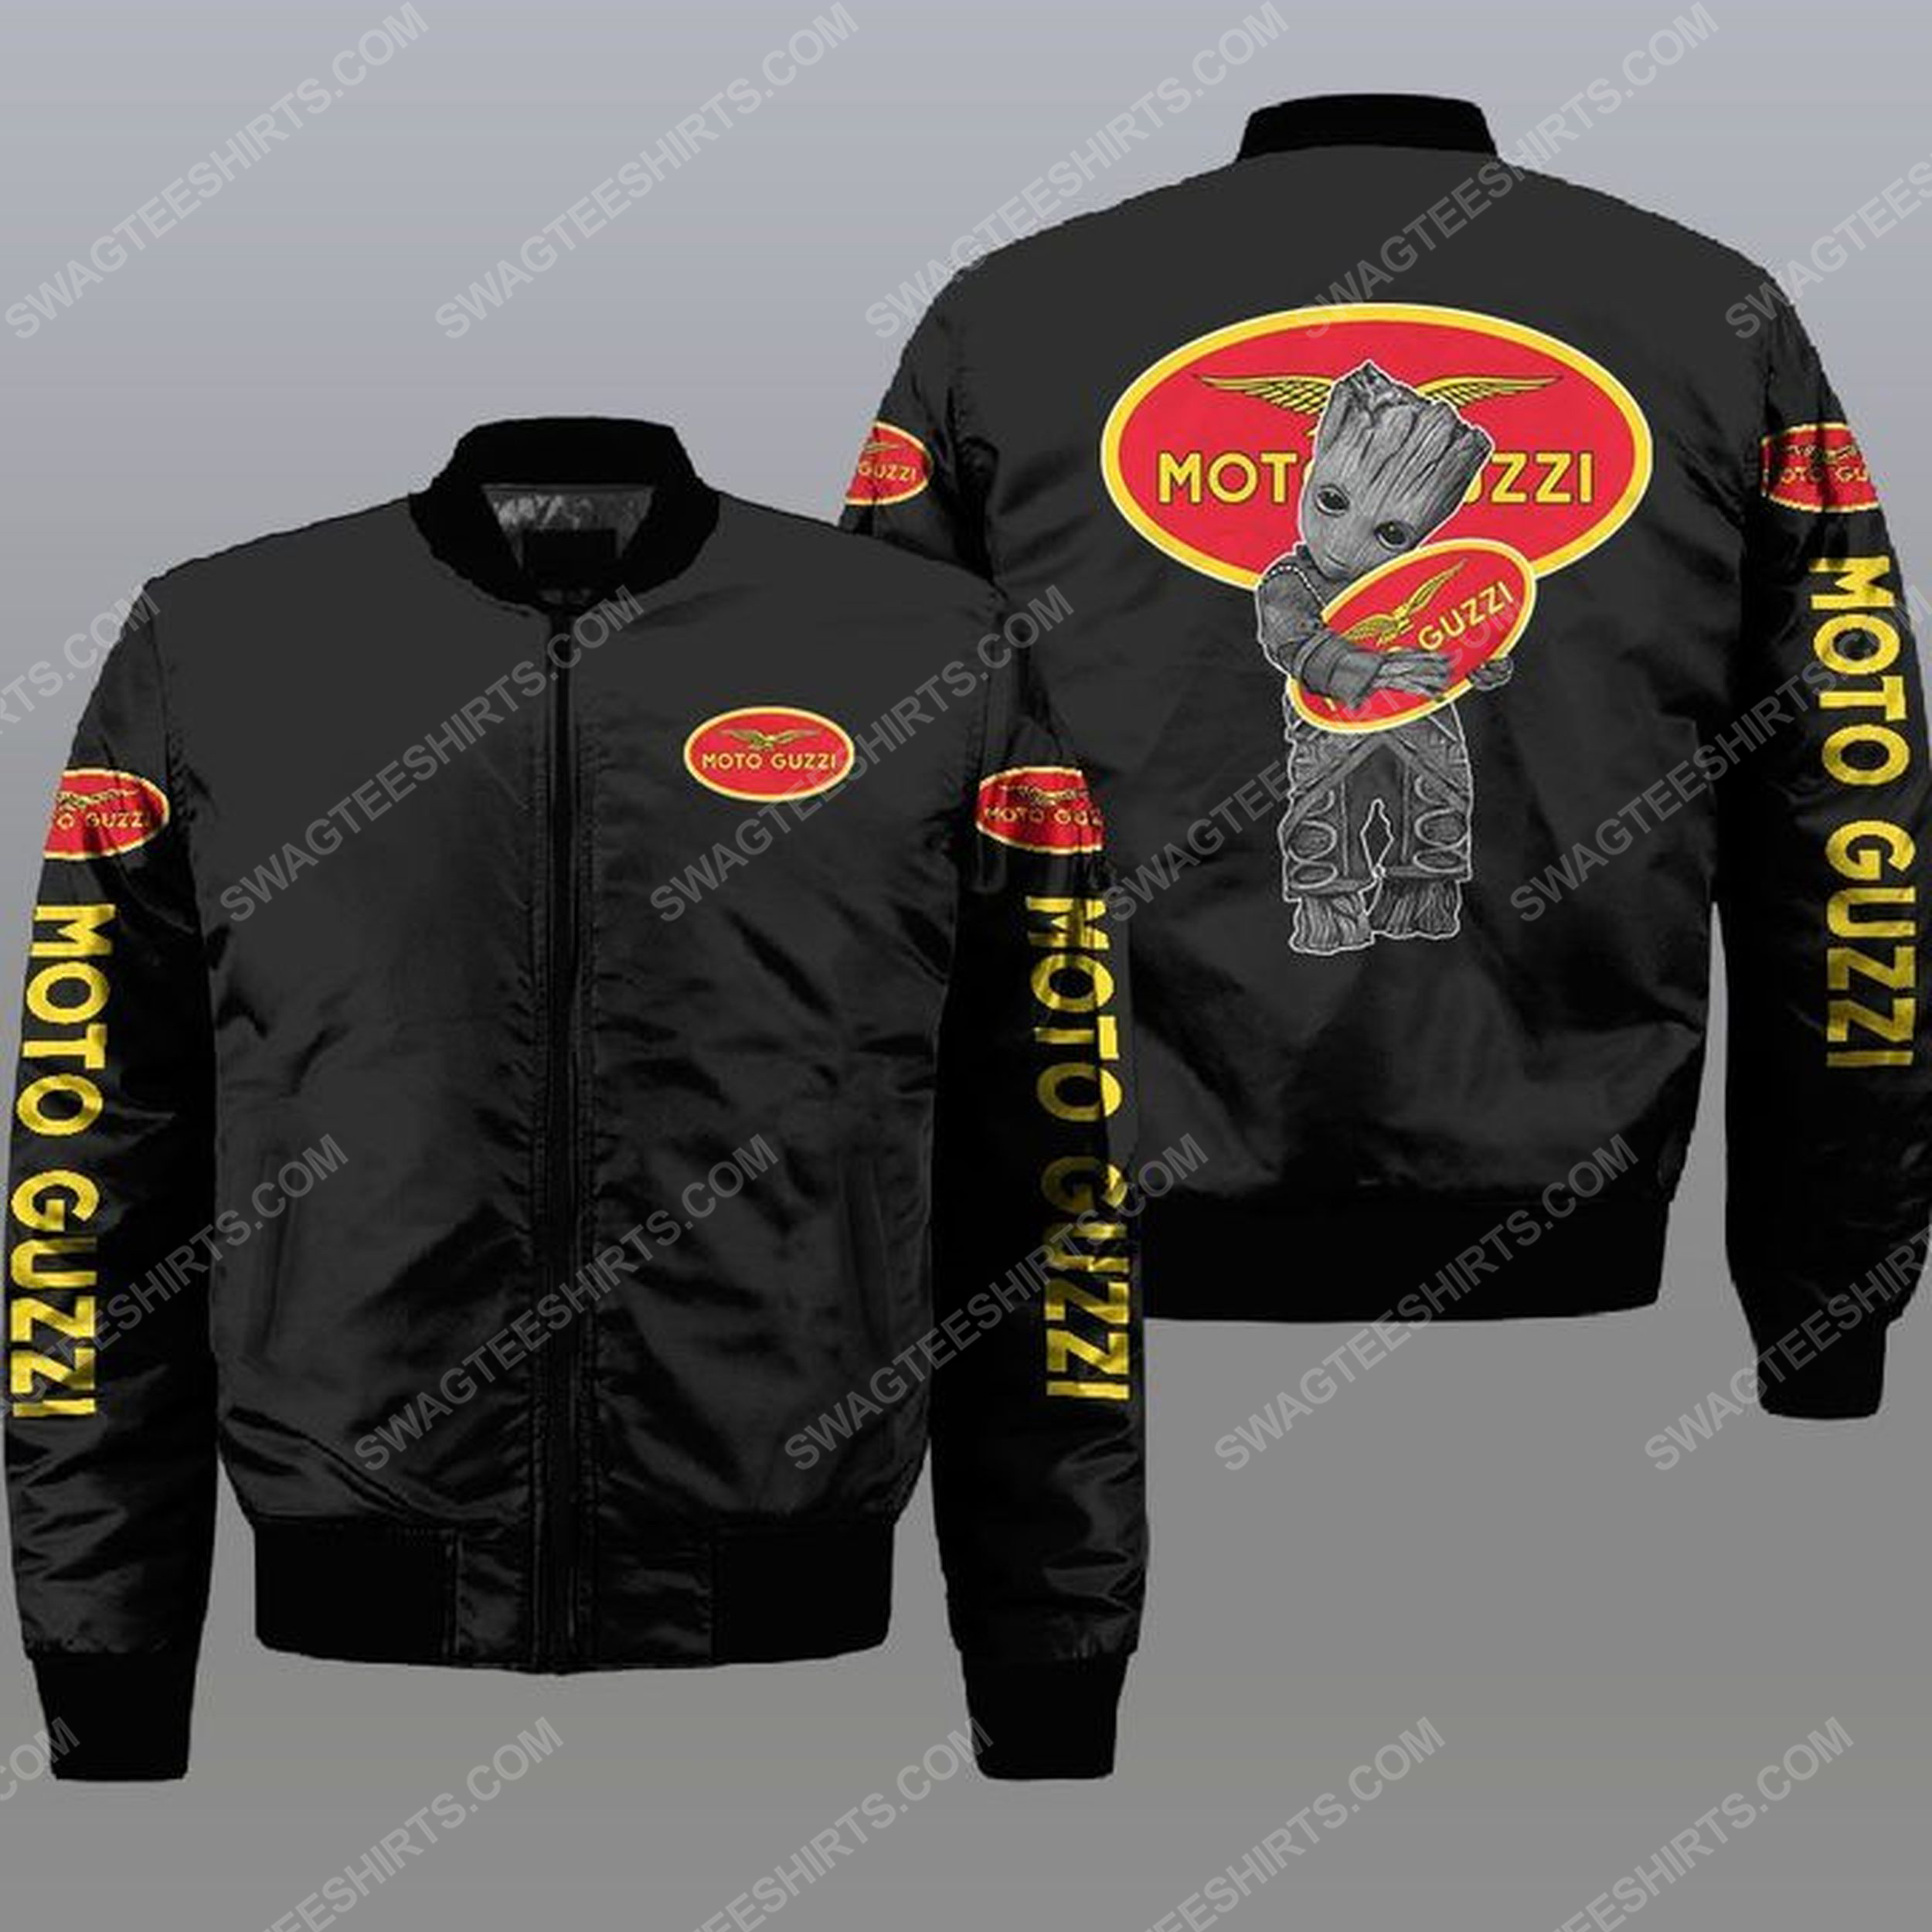 Baby groot and moto guzzi all over print bomber jacket - black 1